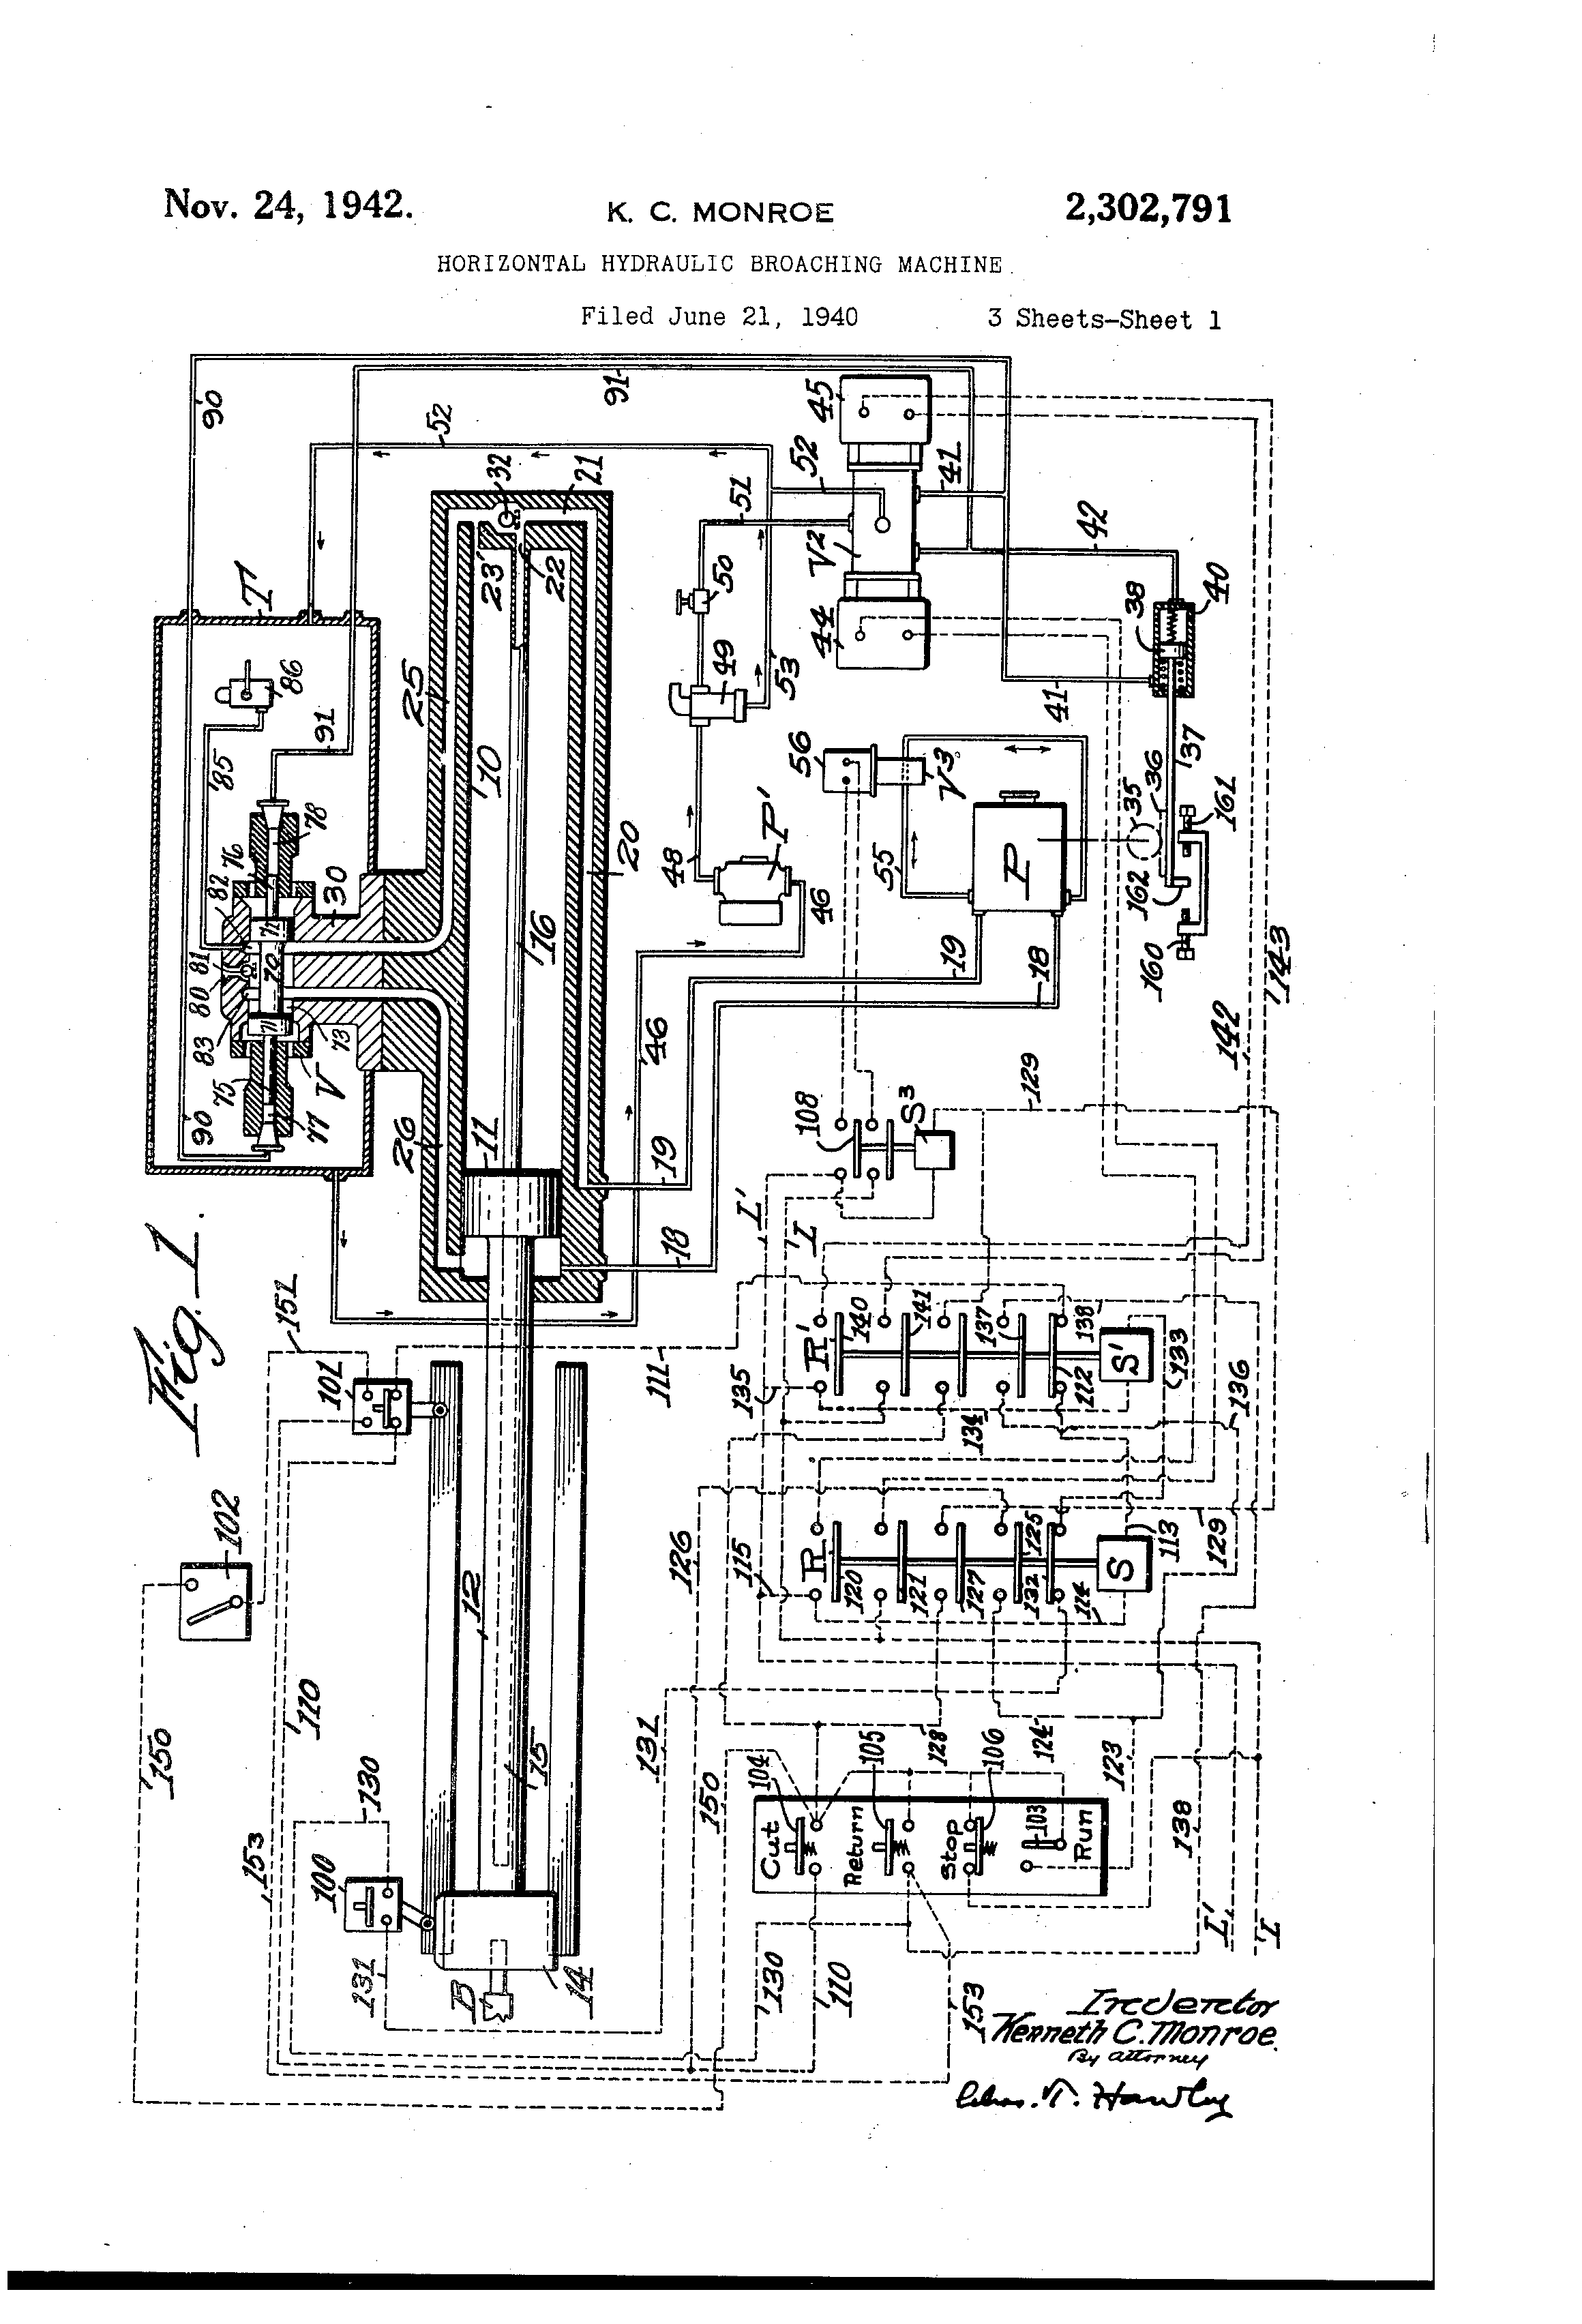 patent us2302791 horizontal hydraulic broaching machine google